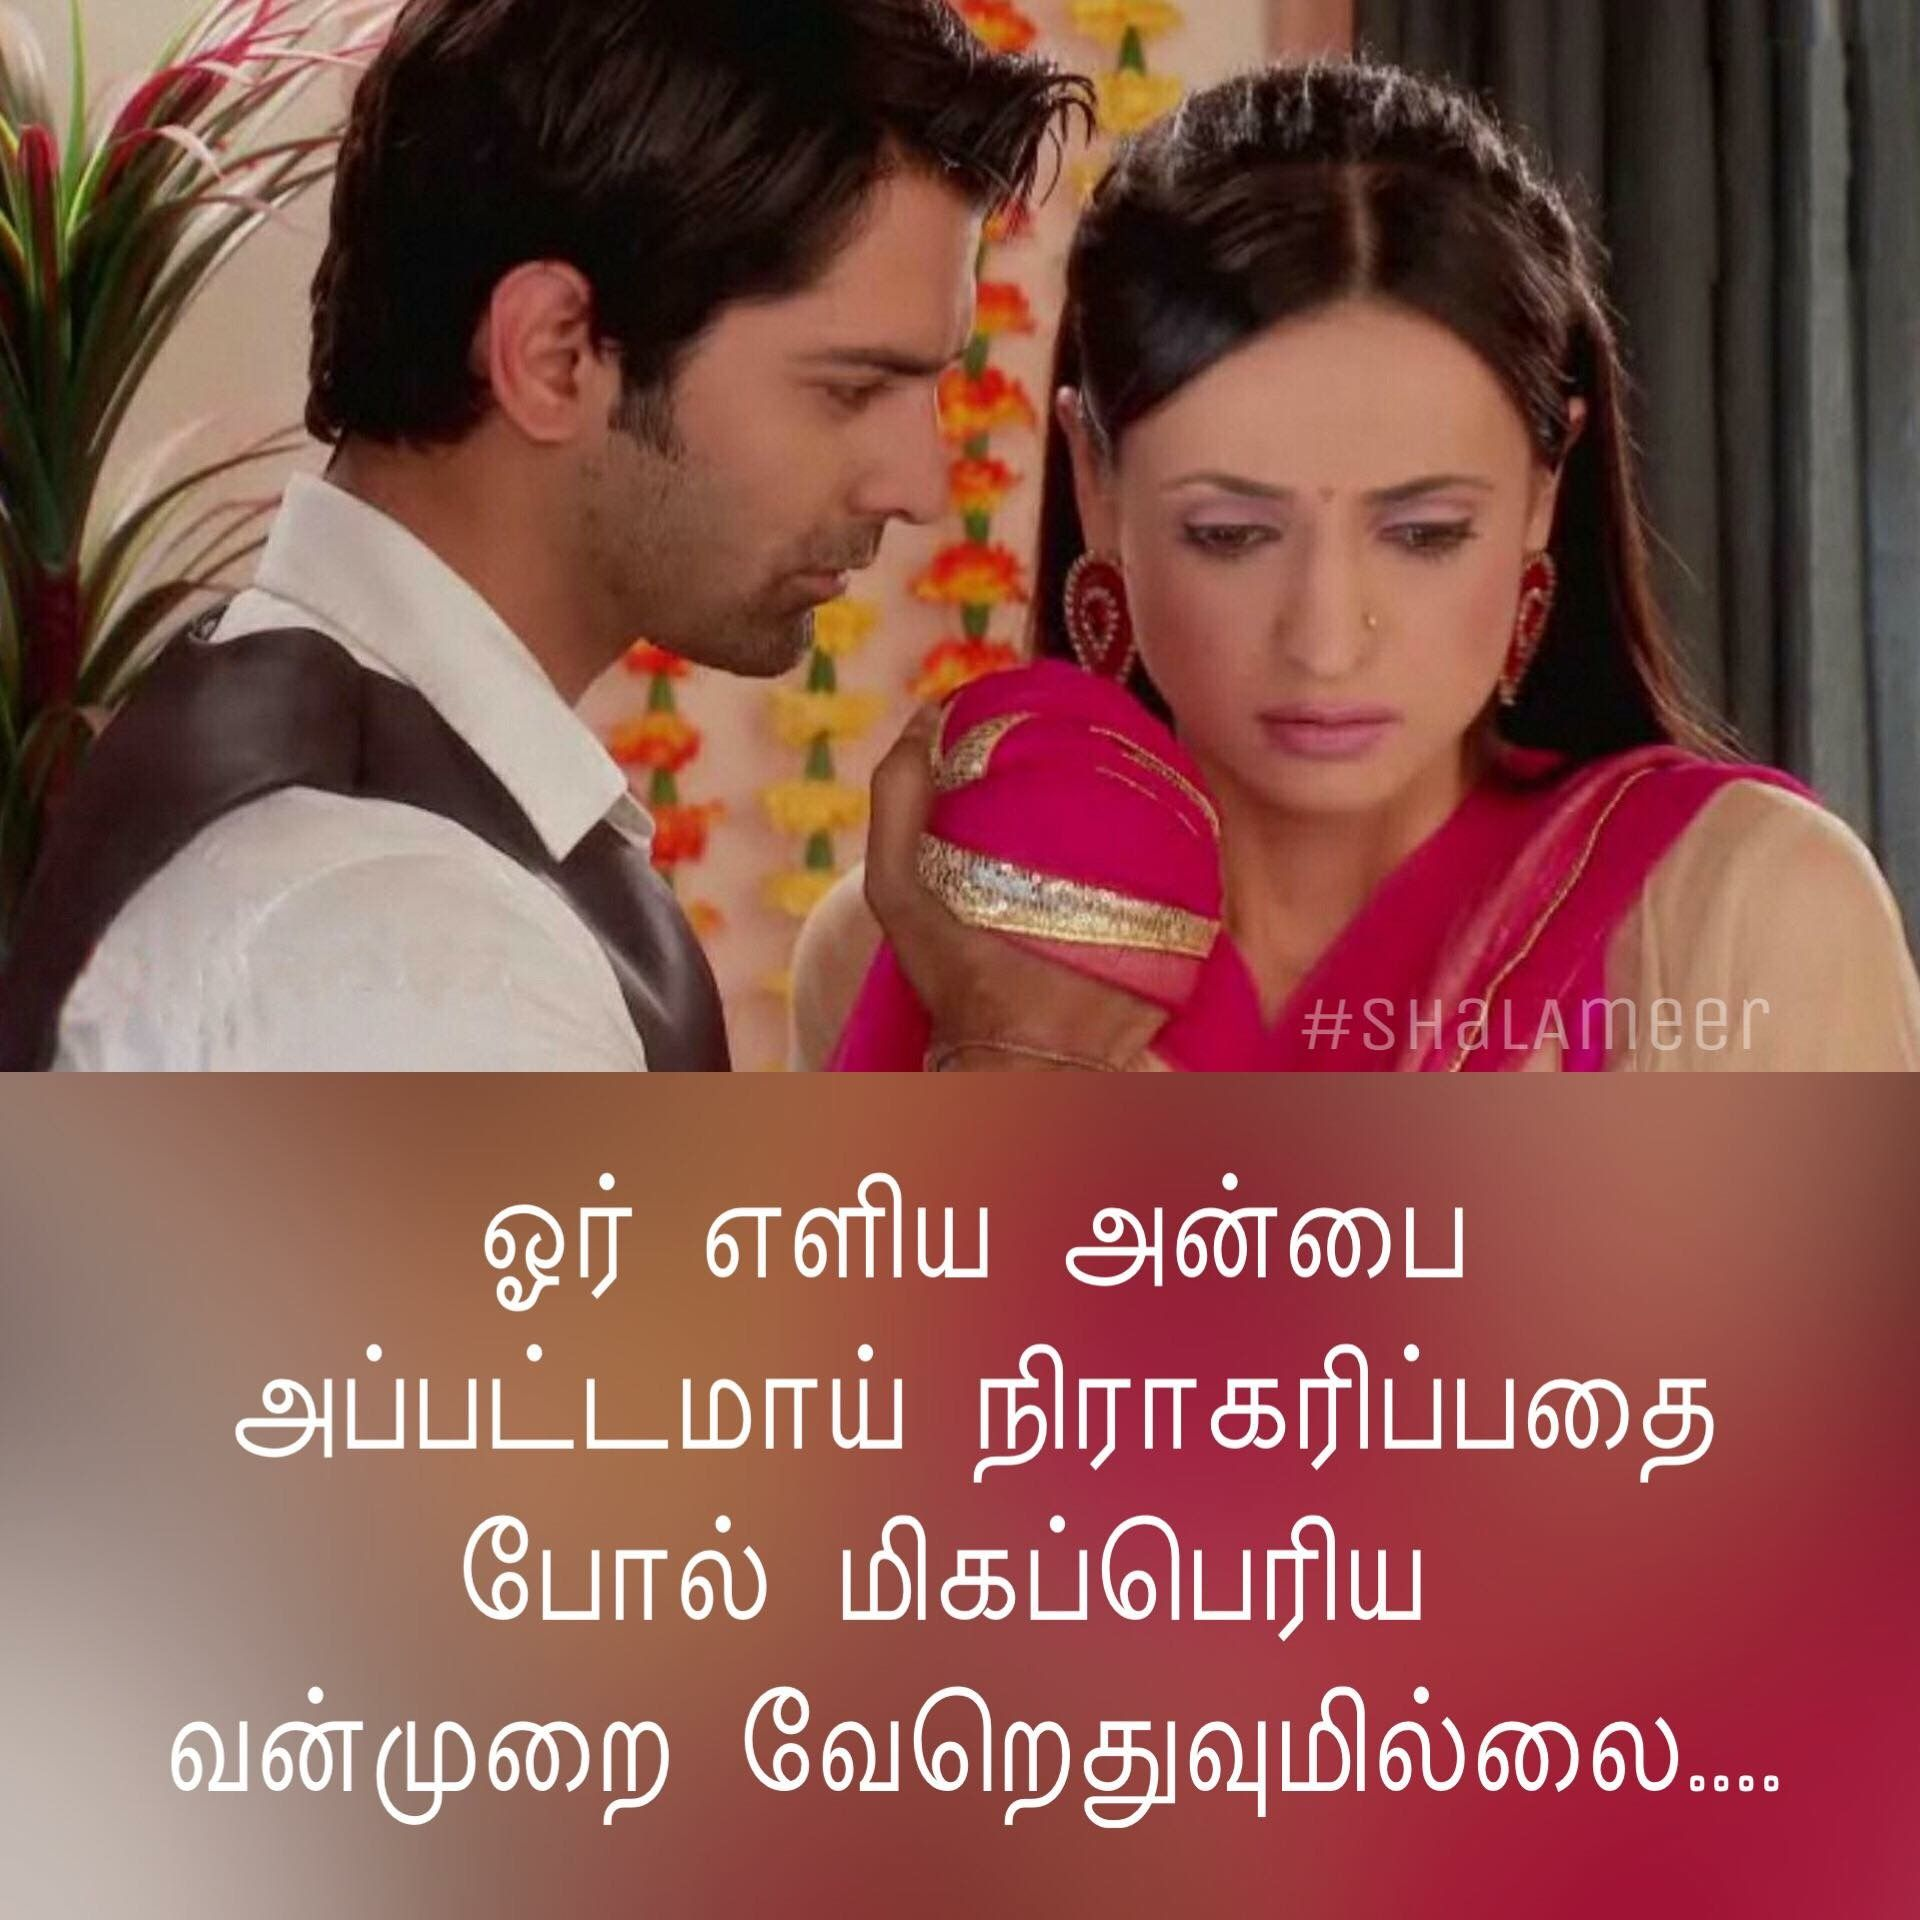 Tamil Sad Quotes Tamil Movie Quotes Tamil Love Quotes Ss